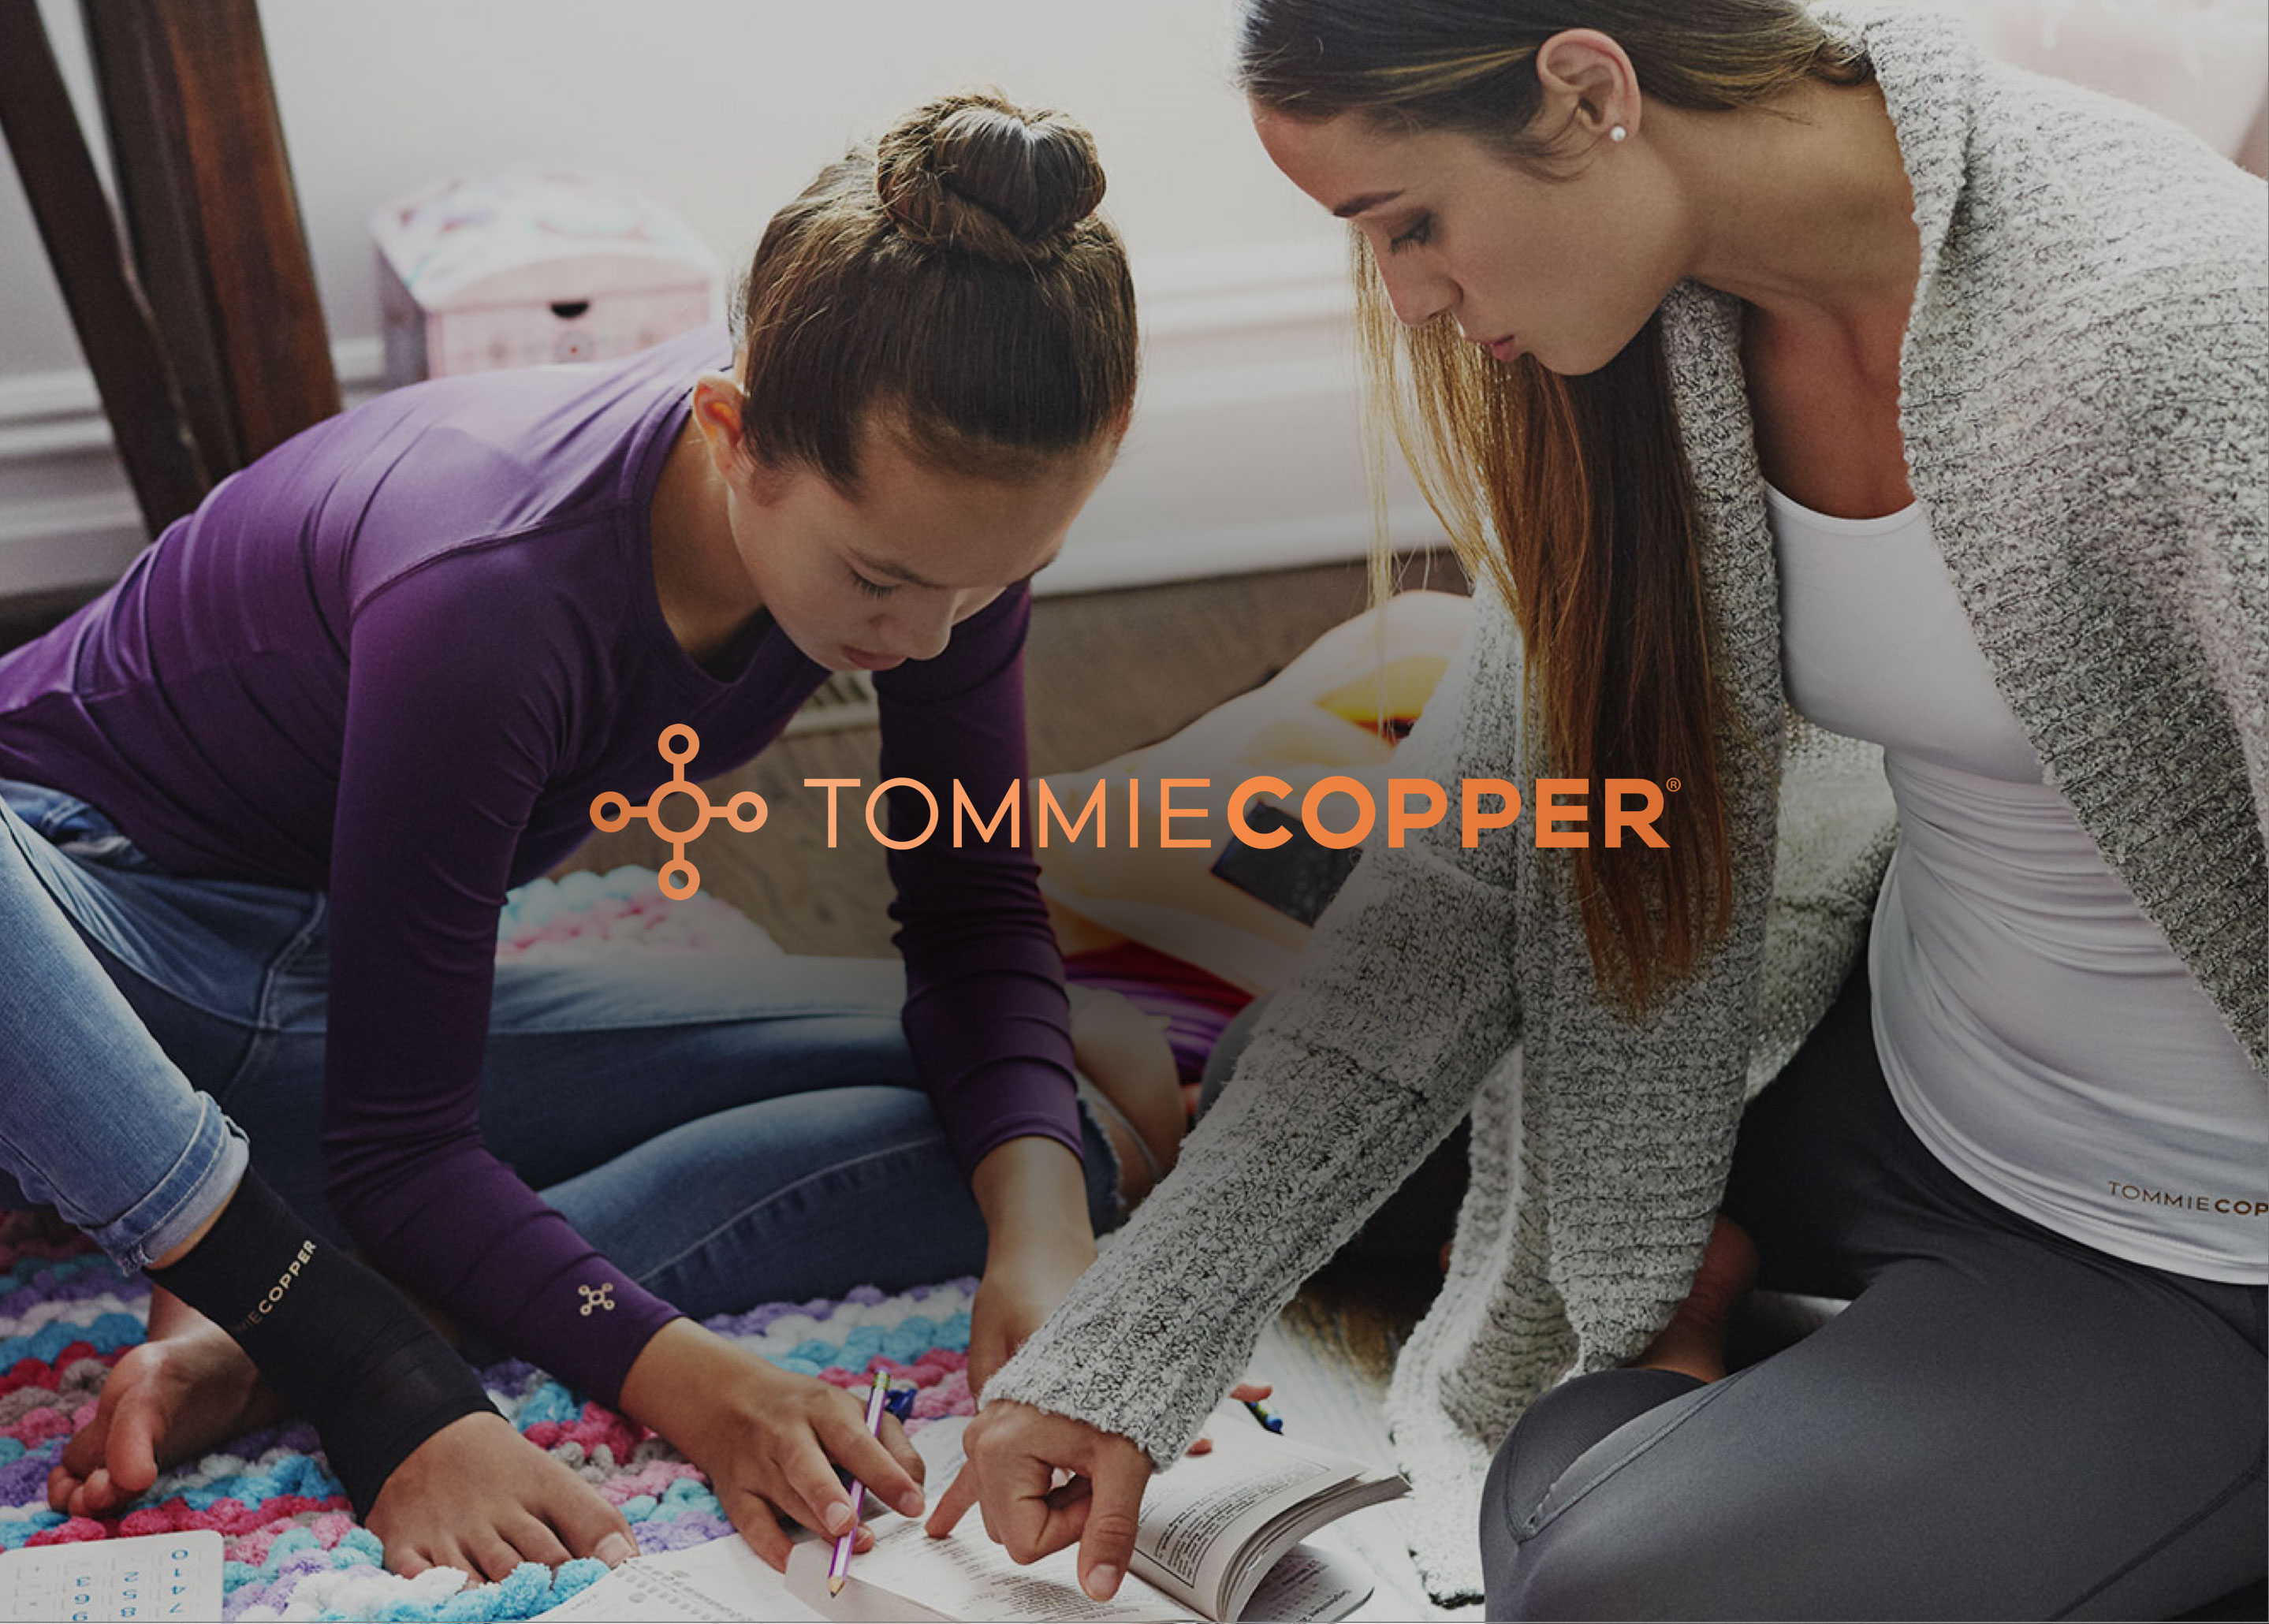 Tommie Copper